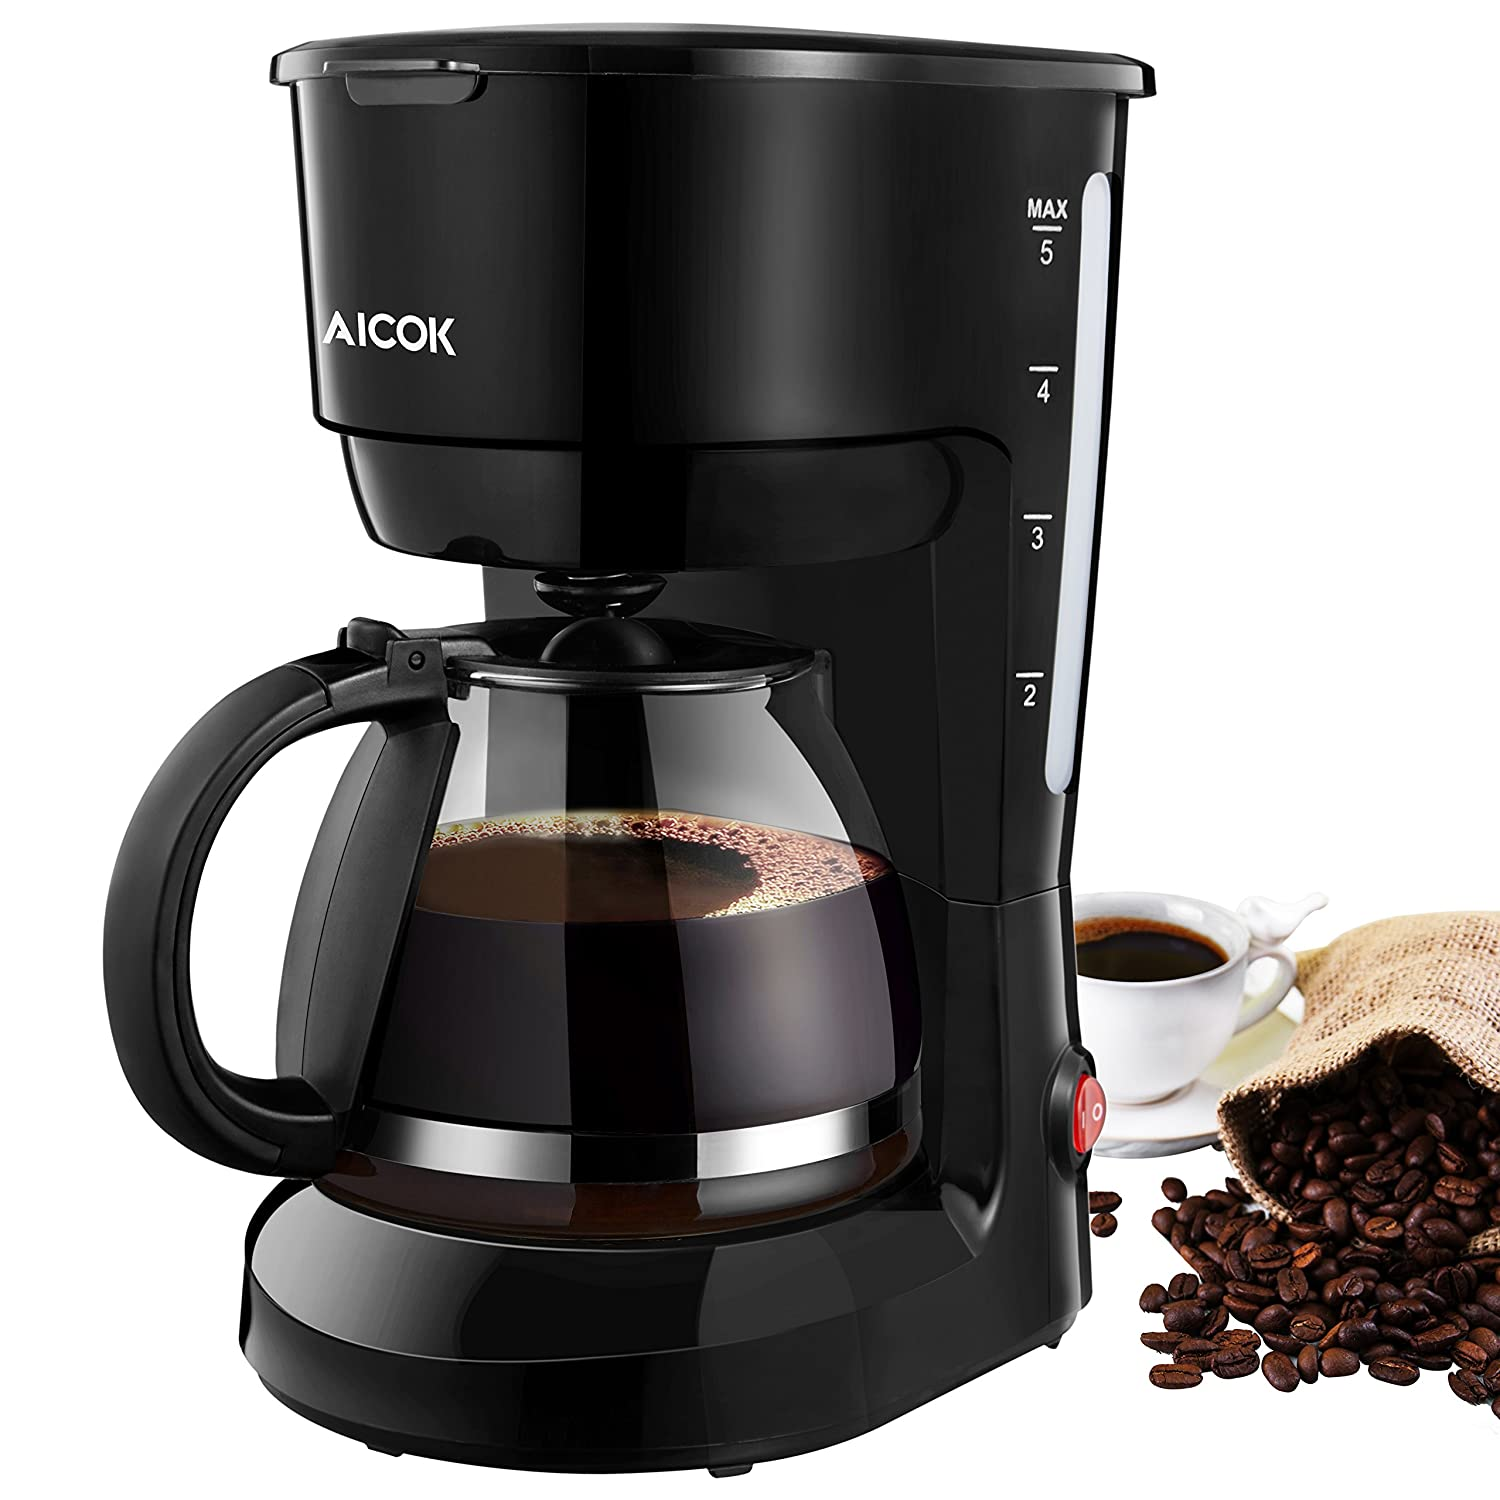 Aicok Drip Coffee Maker Review